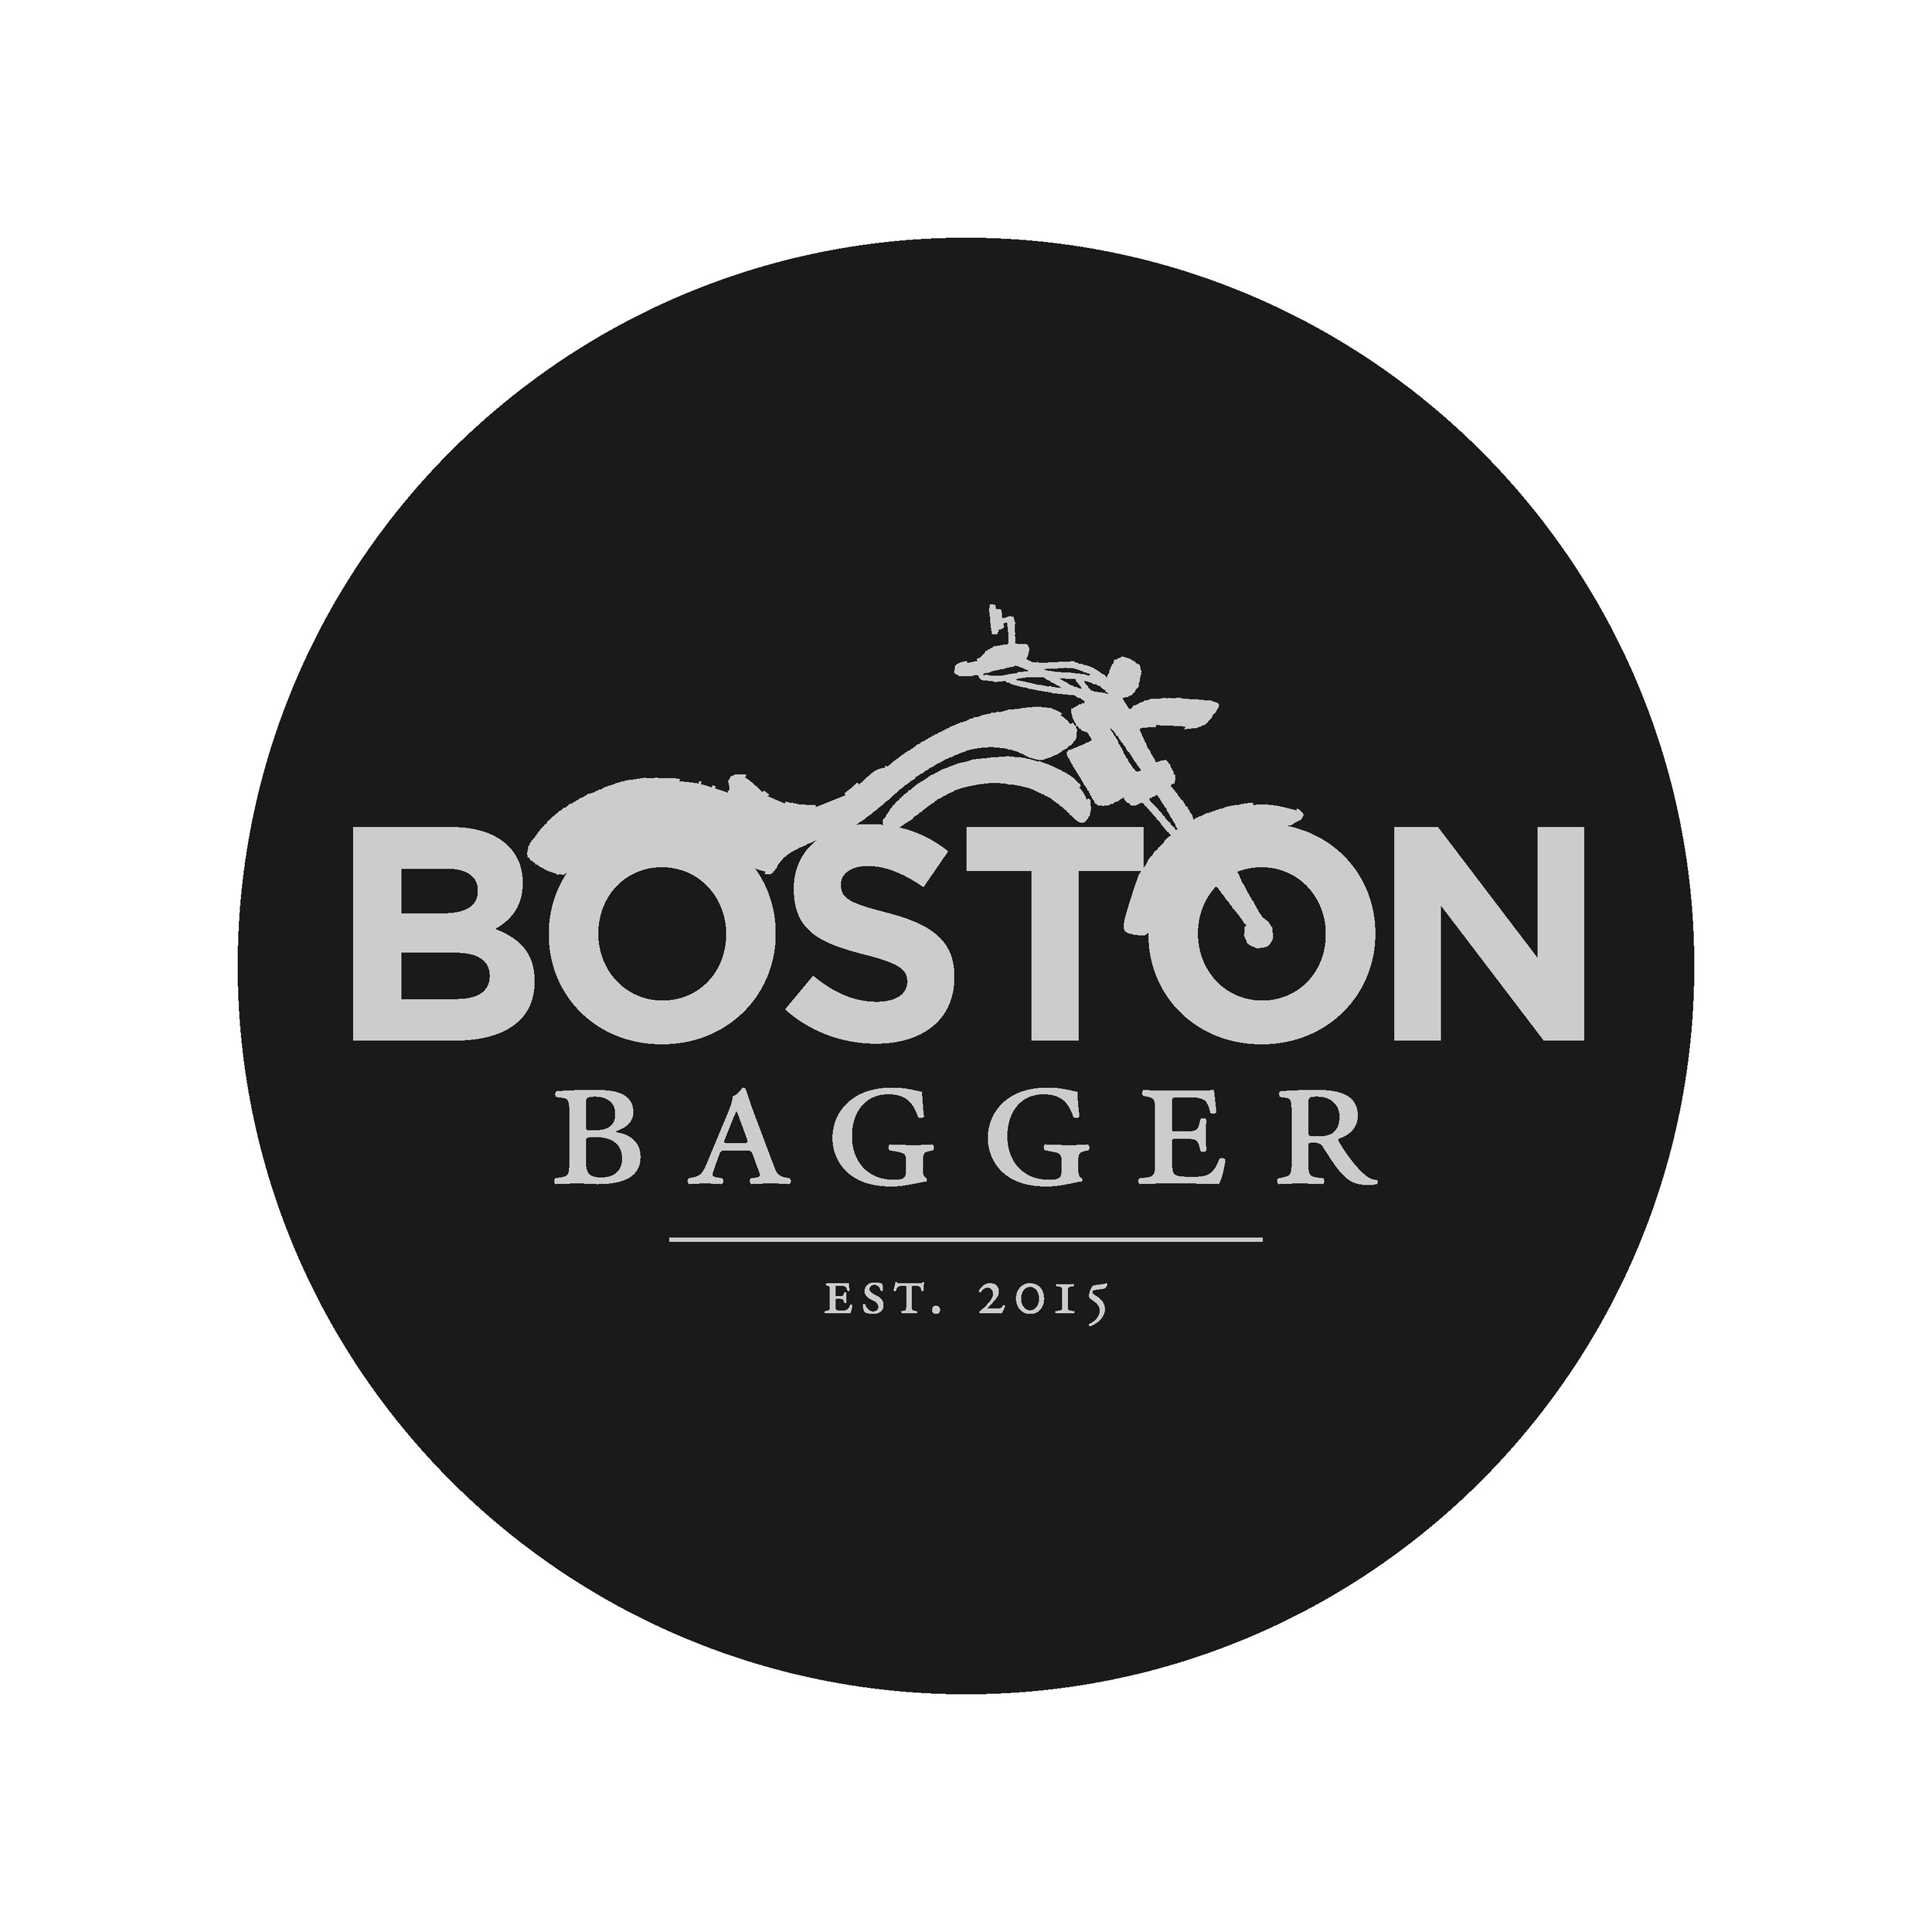 Boston Bagger logo-02.jpg